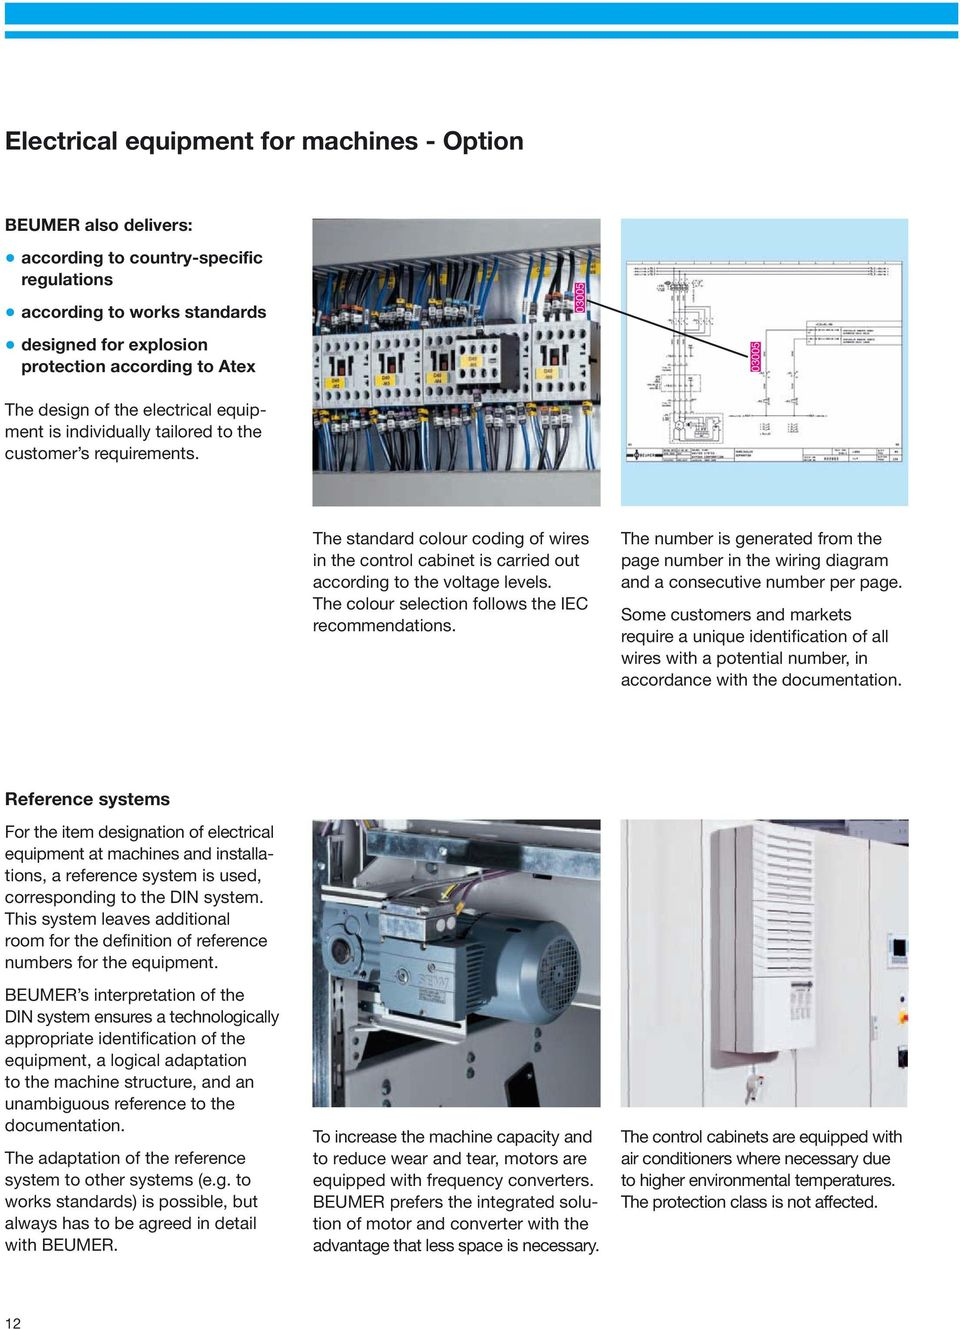 03005 03005 The standard colour coding of wires in the control cabinet is carried out according to the voltage levels. The colour selection follows the IEC recommendations.